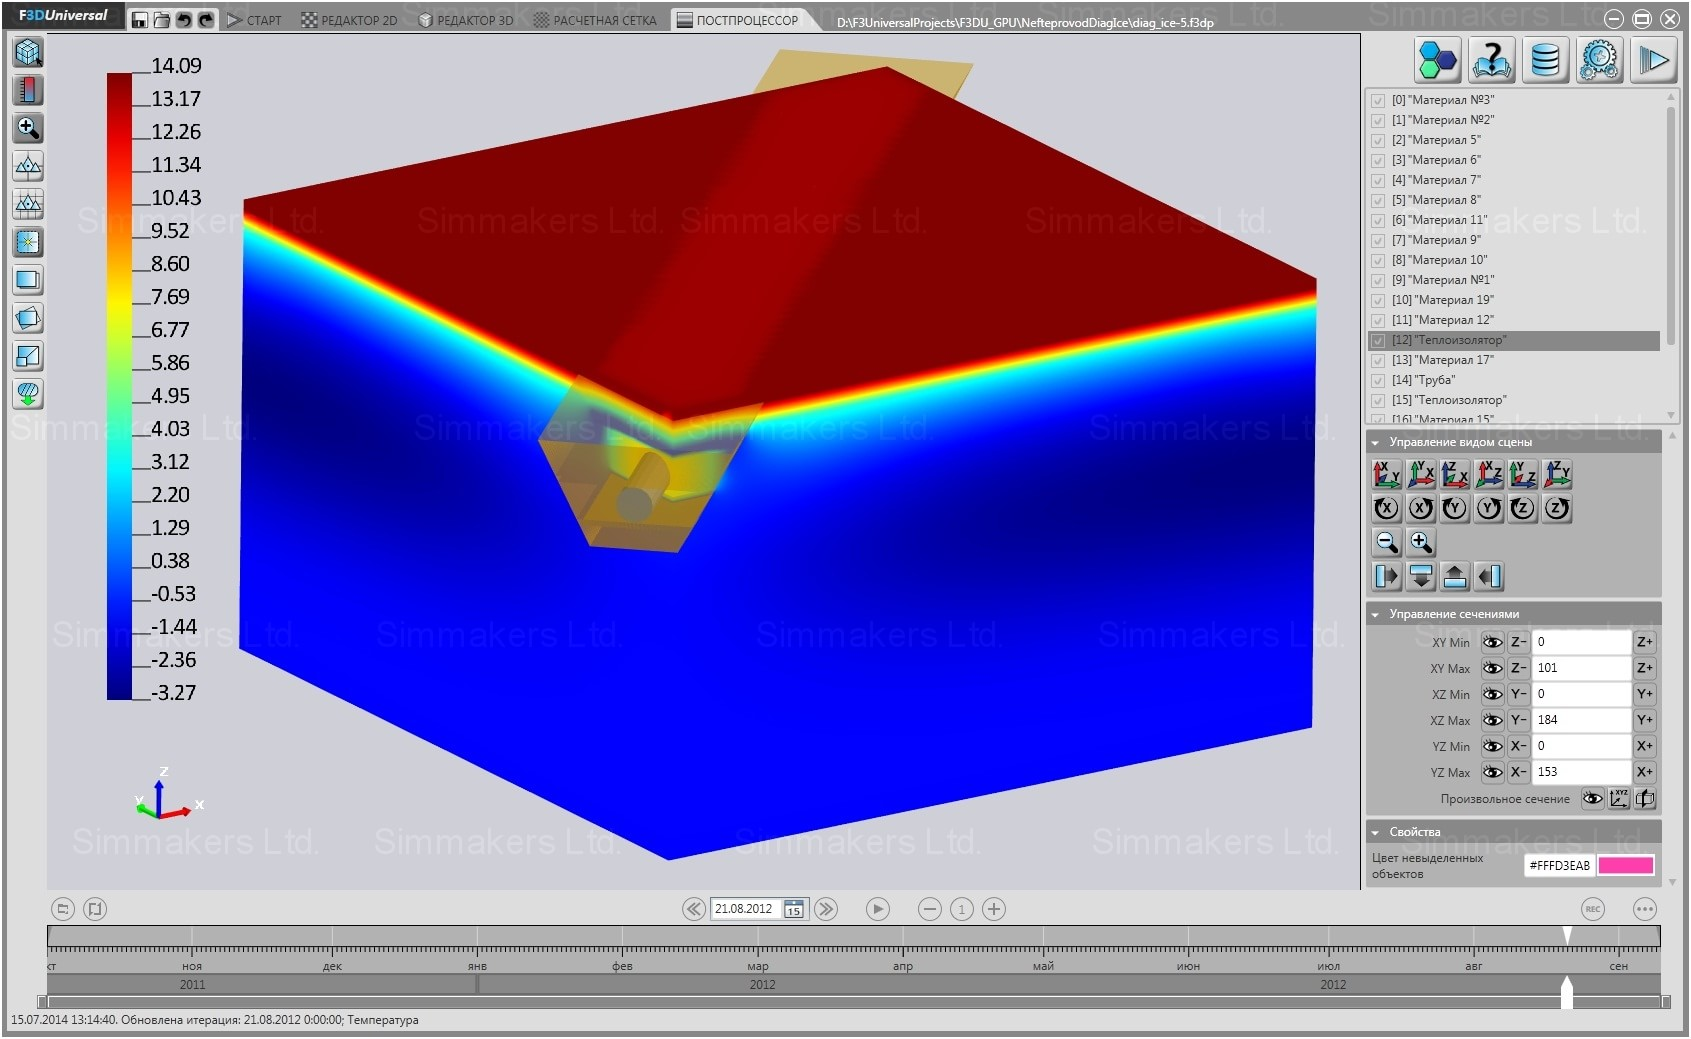 3D temperature field calculated in the Frost 3D software